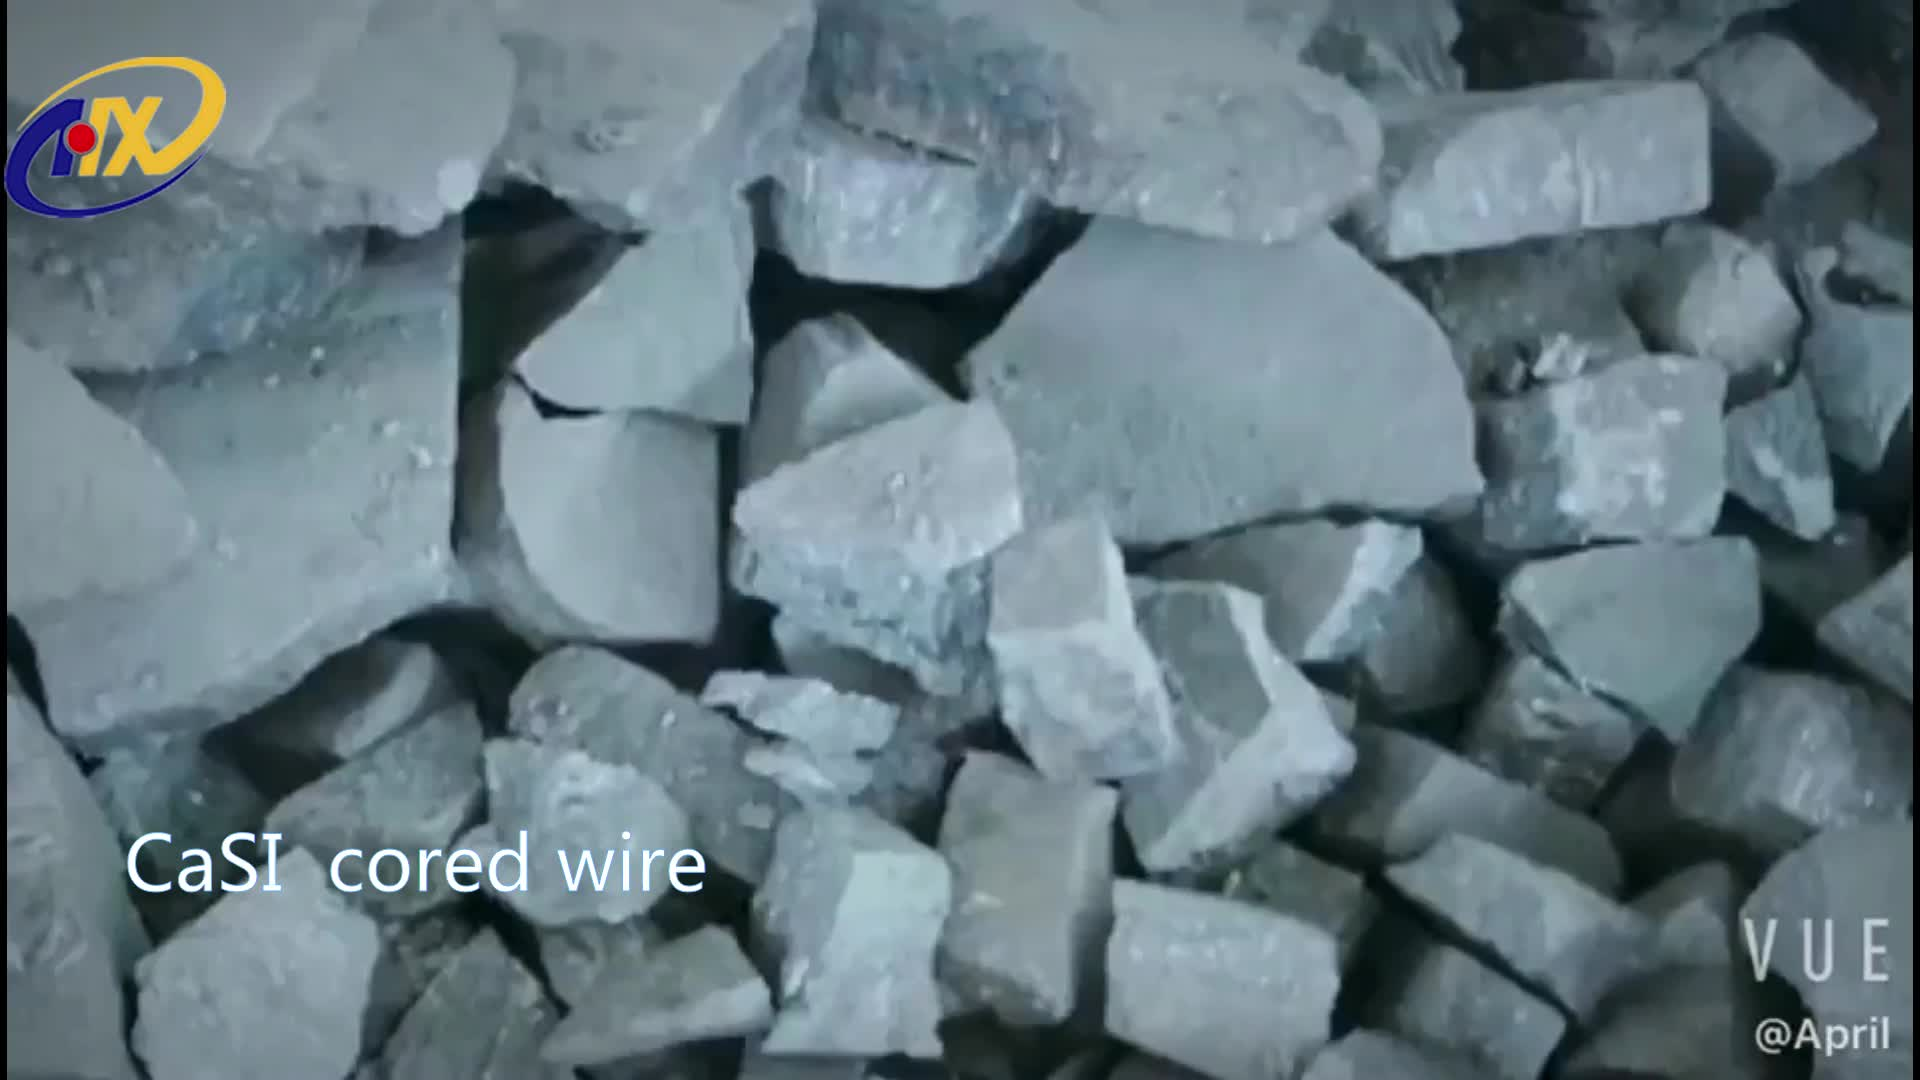 High Purity Silica Wires/casi Core Wires Solid Magnesium Silicocalcium Pure Ferro Calcium Silicon Alloy Cored Casi Wire